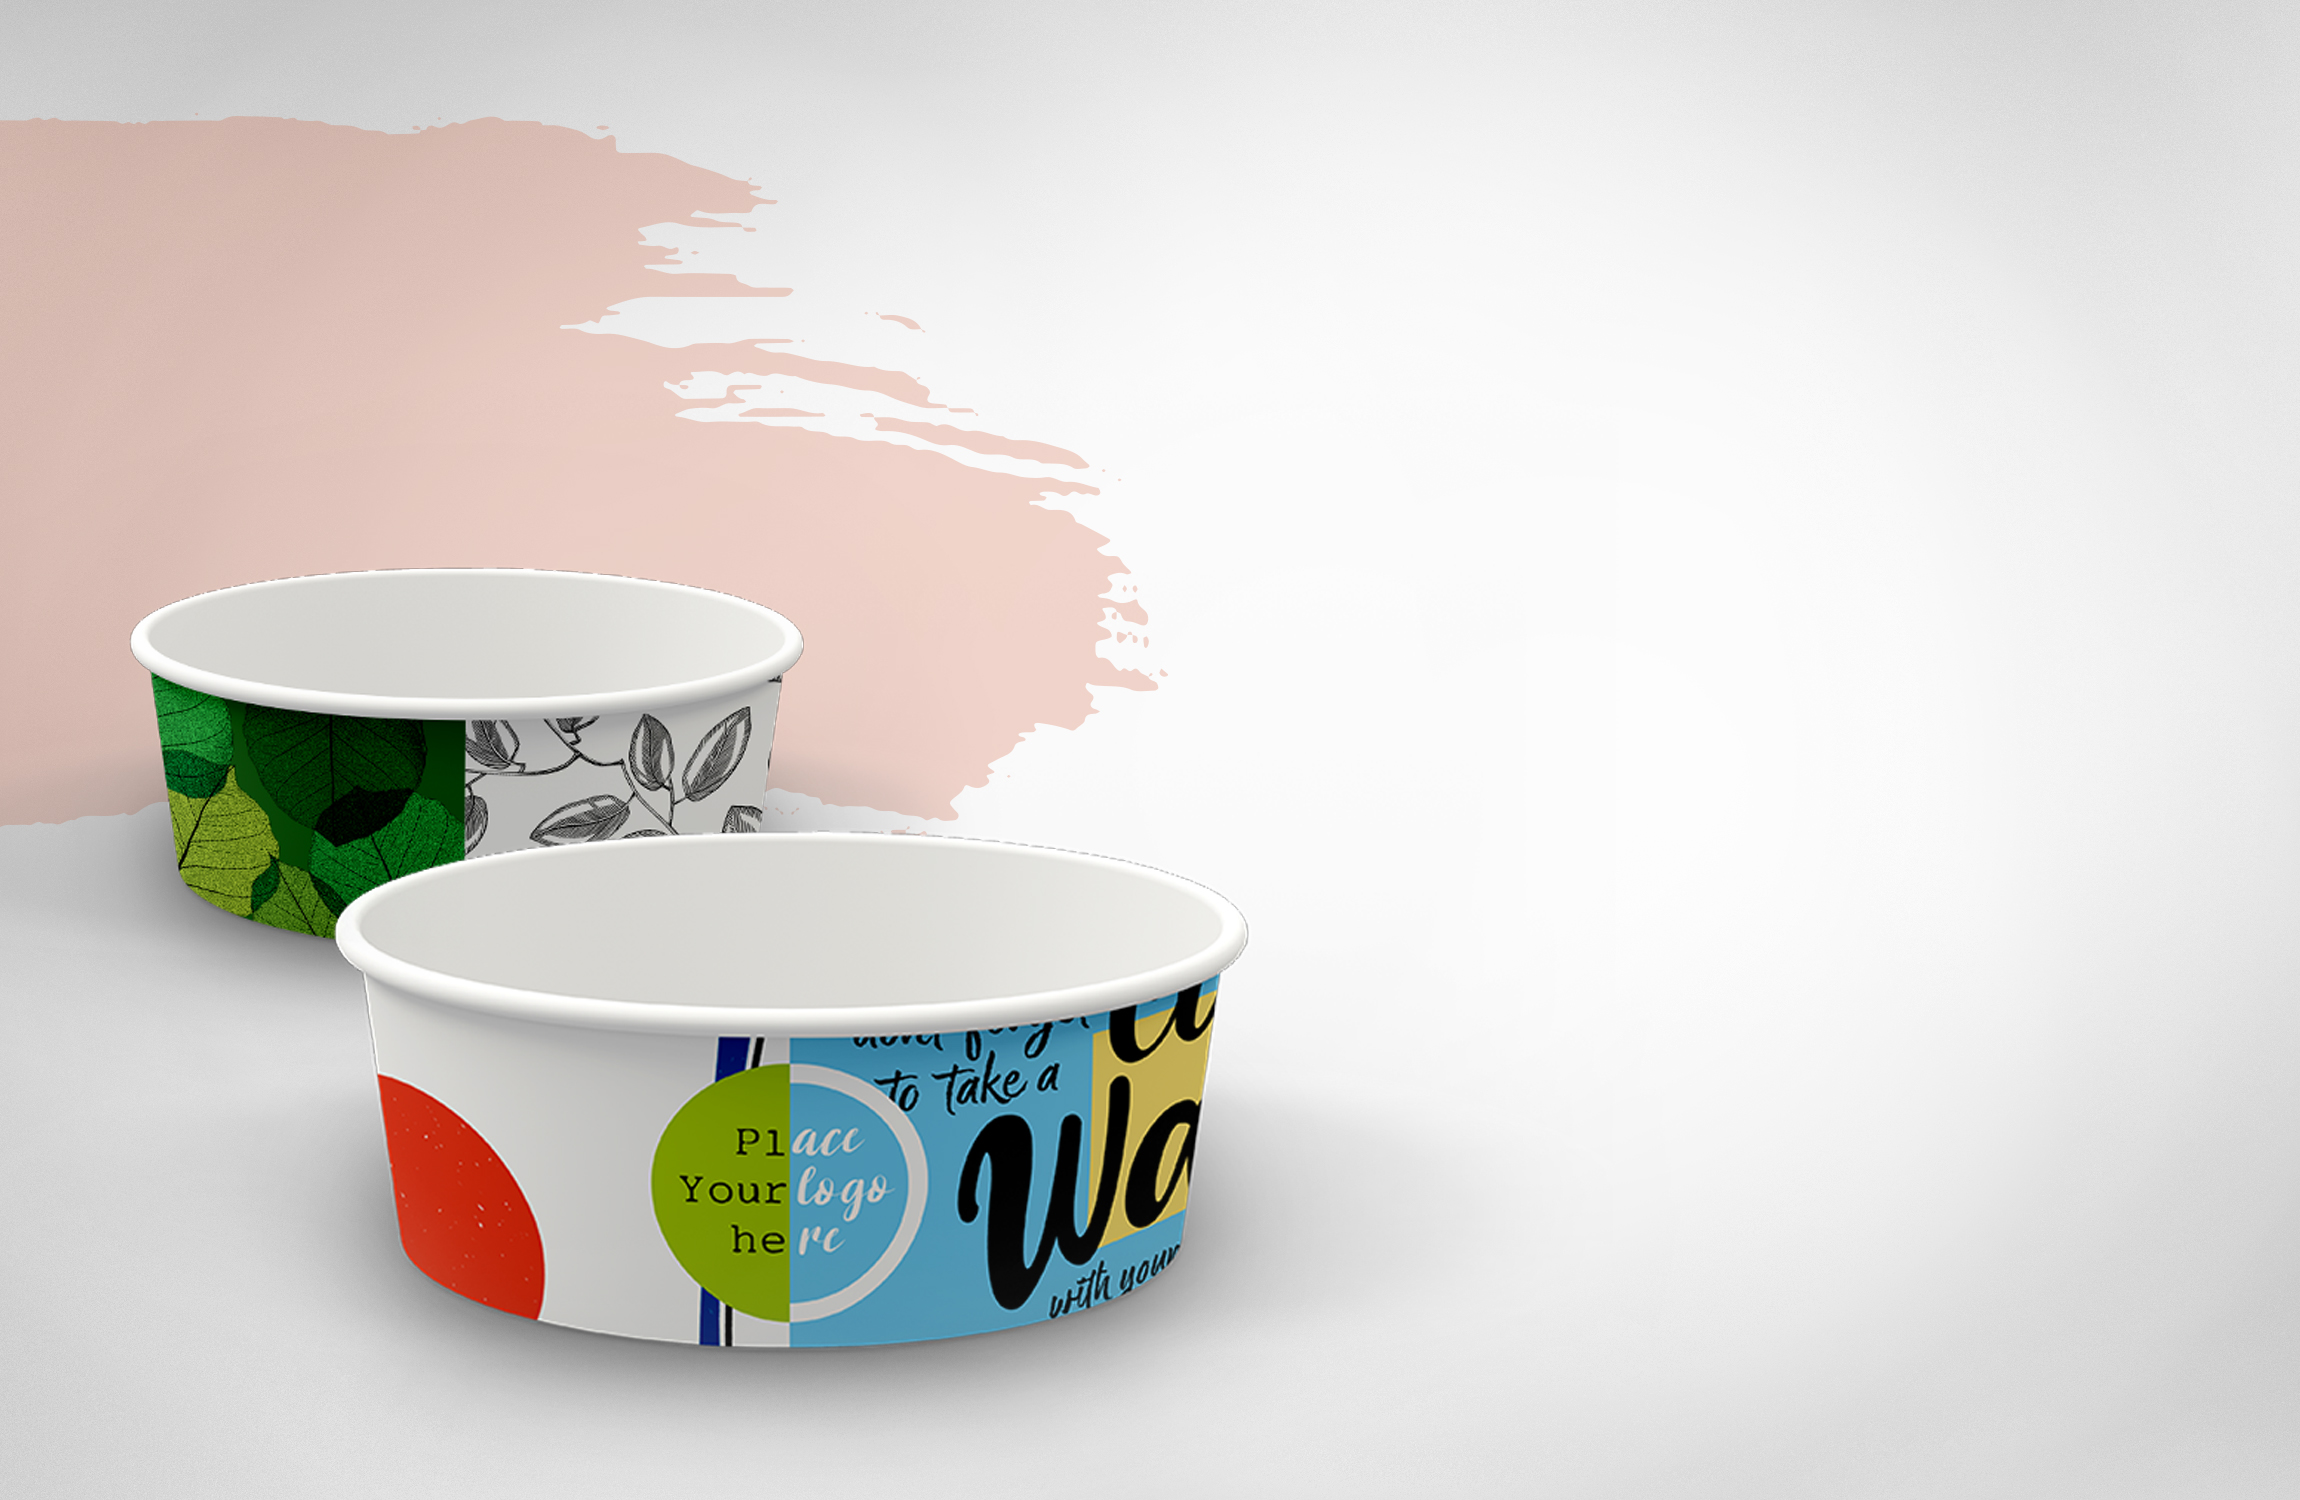 NEW! Salad bowls with custom design from 1080 pcs.